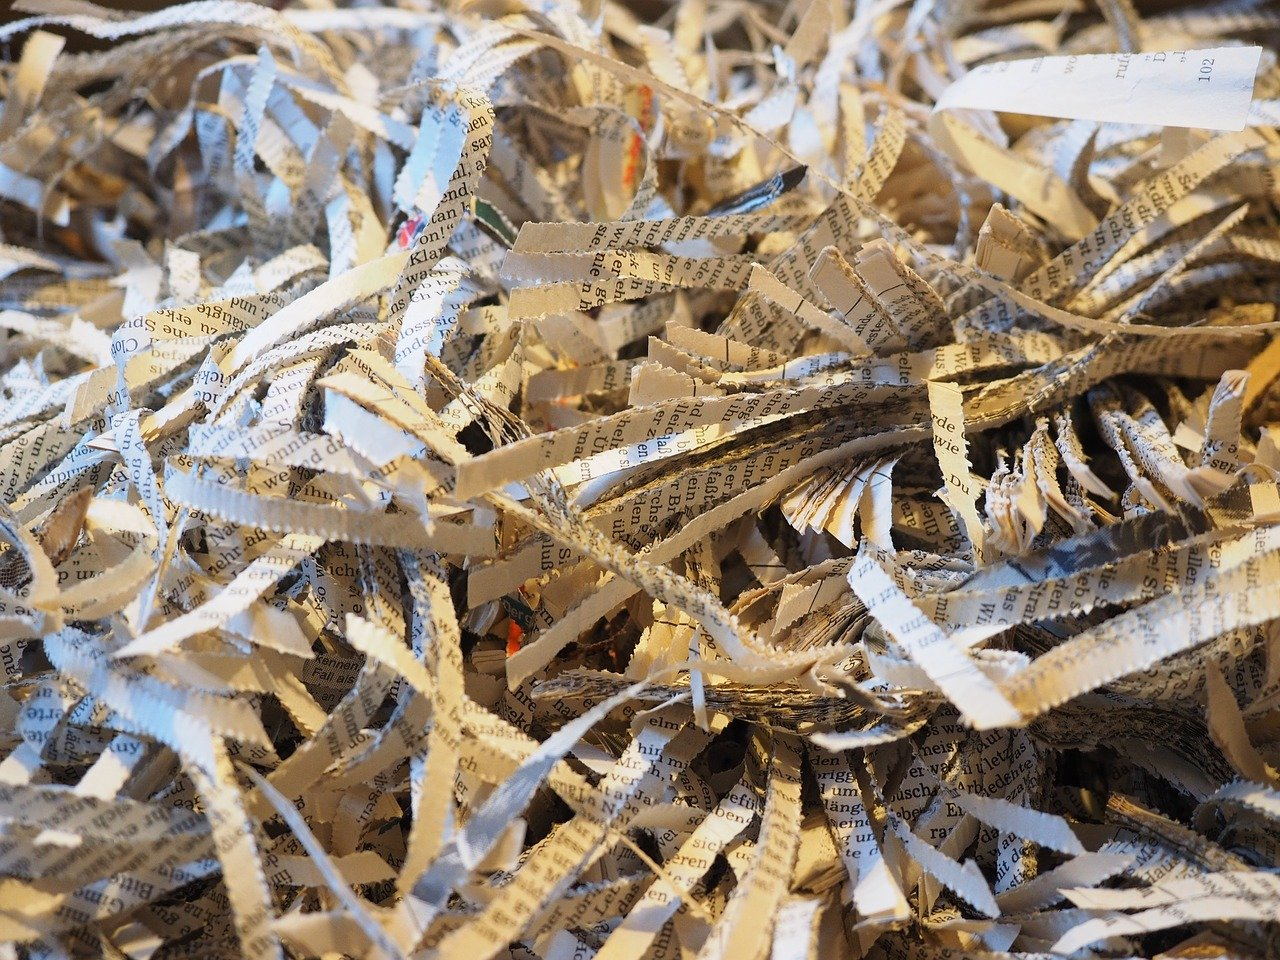 Shredded paper, indicating a failed recruitment plan